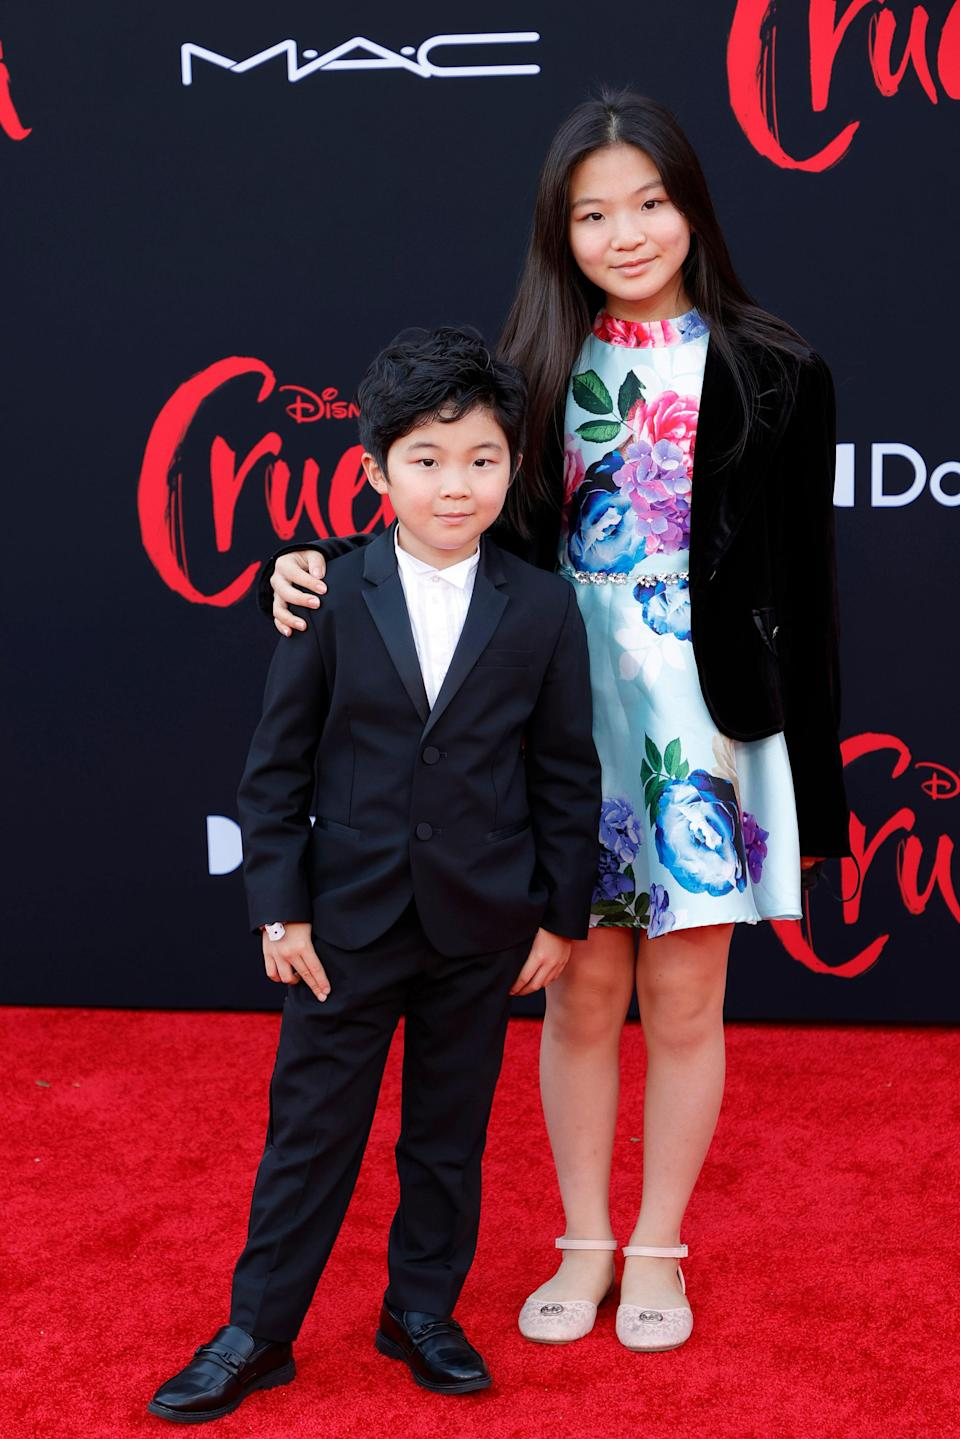 Breakout actor Alan Kim attended the premiere with his sister, actor Alyssa Kim. Alan also got the suit memo. Rocking Gucci, he opted for a simple, sleek black suit and white shirt with pleated details down the front. Alyssa, on the other hand, went for a summery floral dress and a start black blazer.